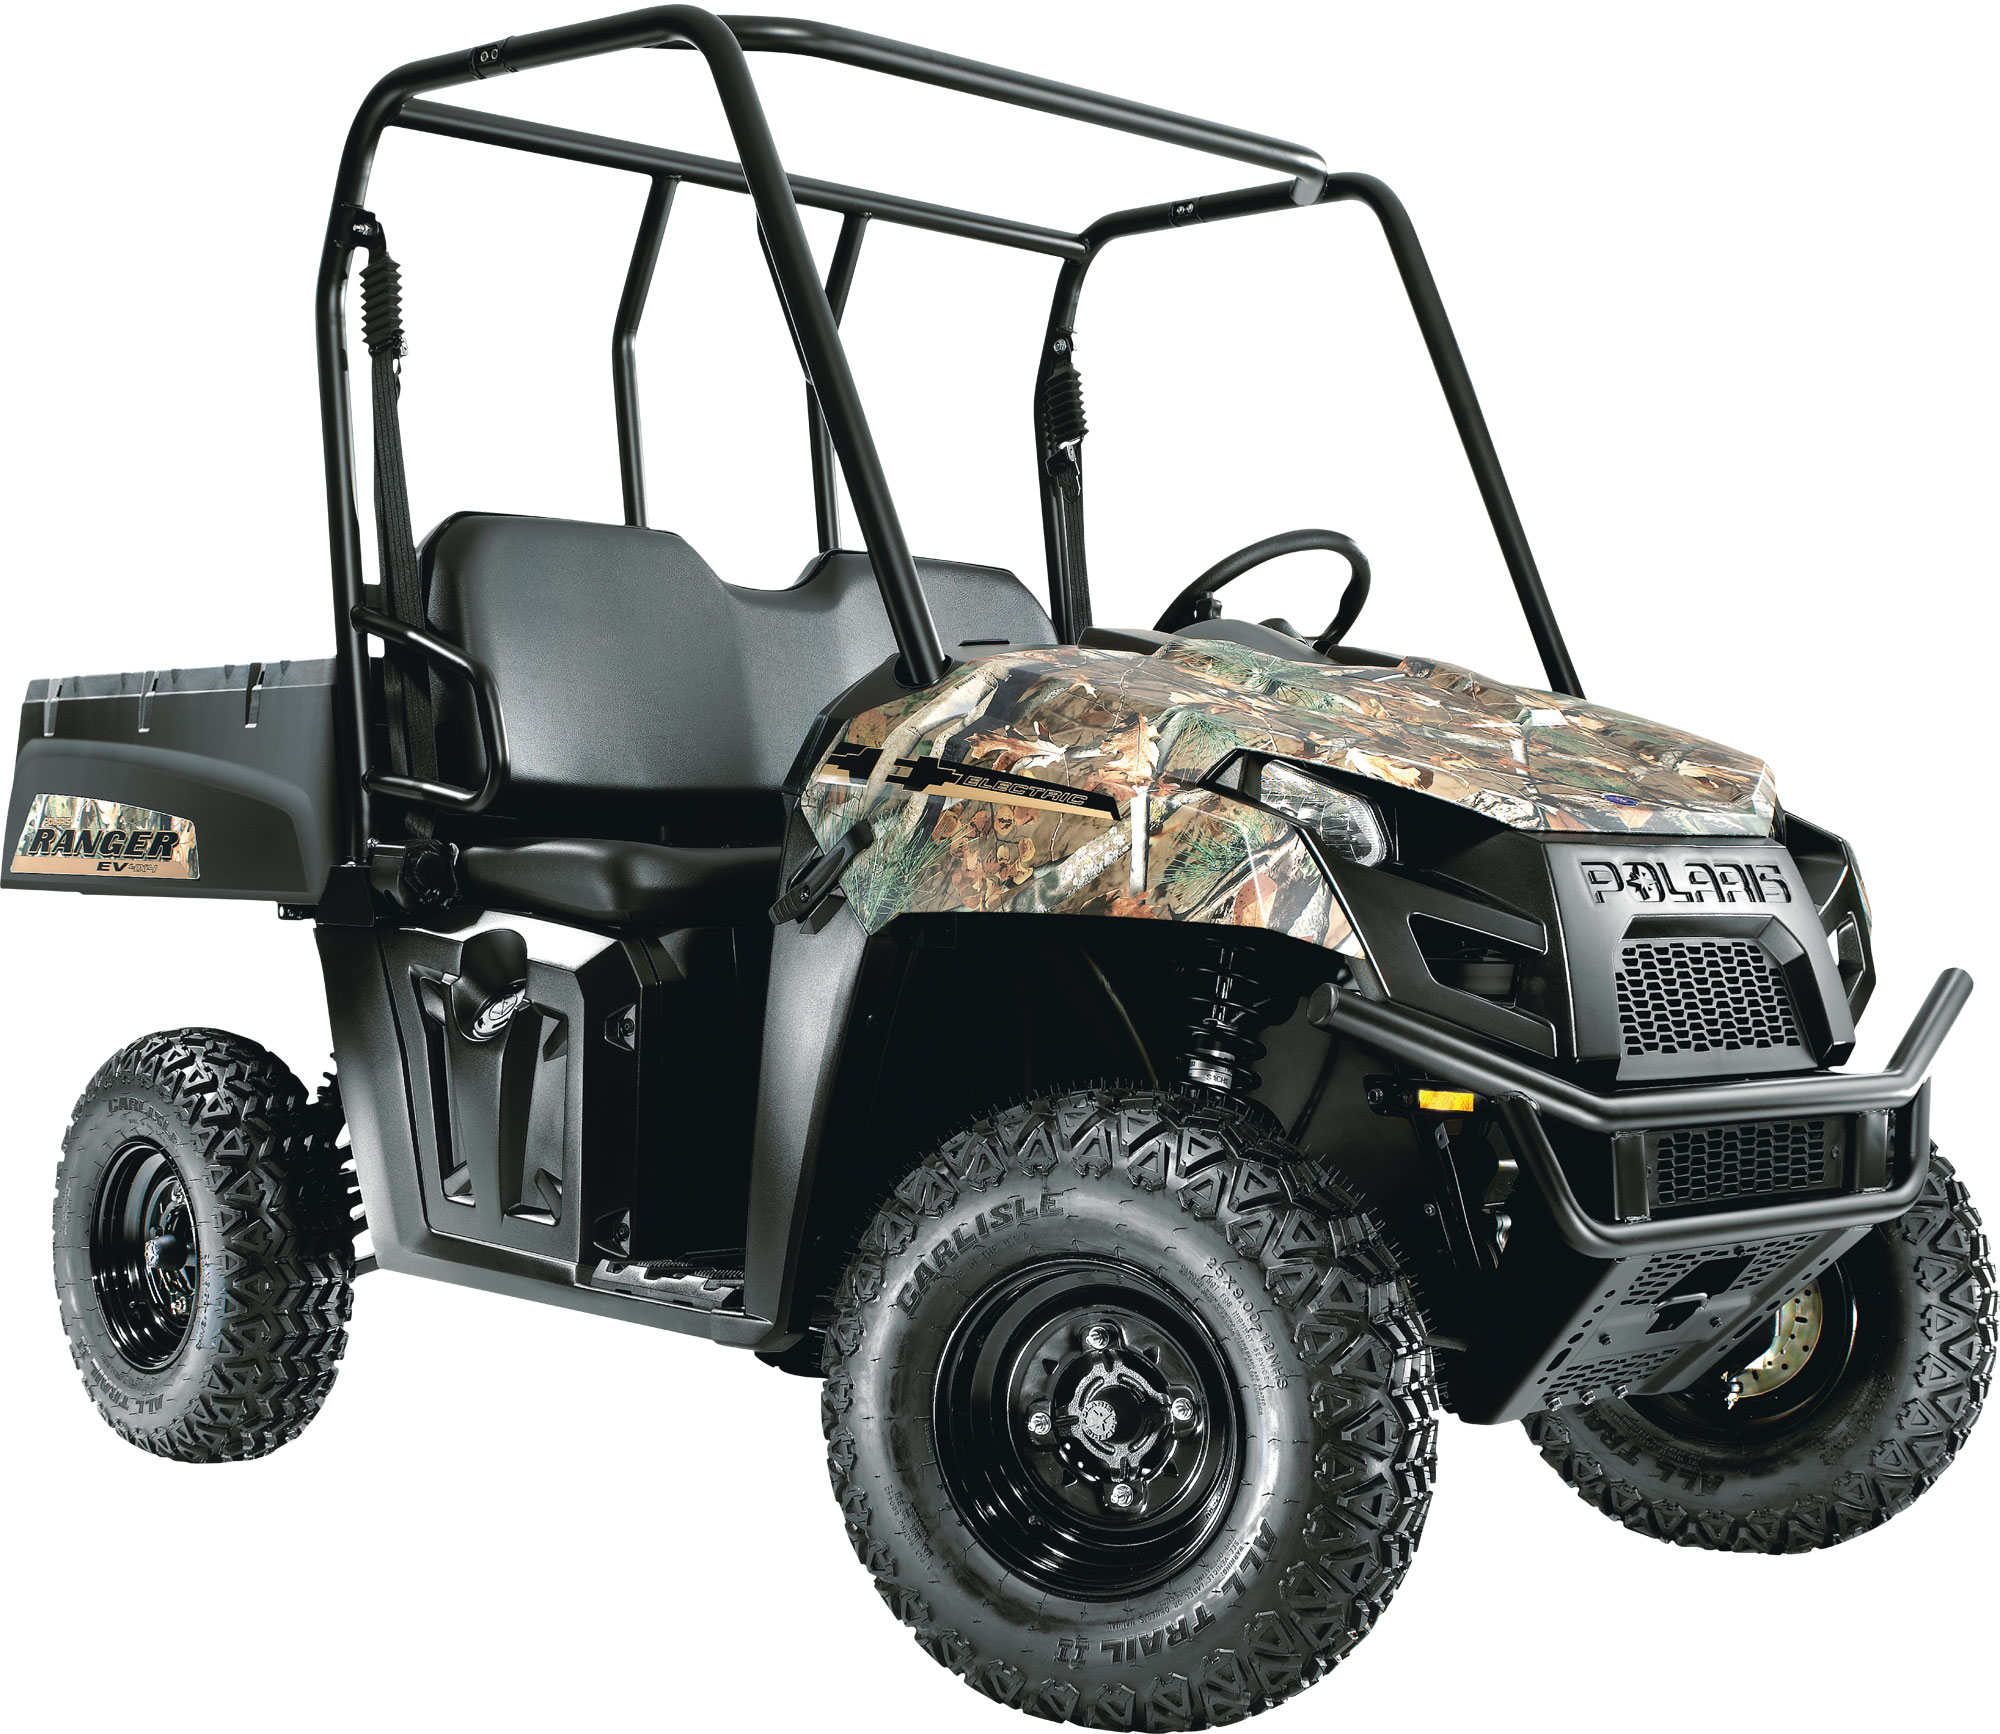 polaris ranger ev specs 2011 2012 autoevolution. Black Bedroom Furniture Sets. Home Design Ideas